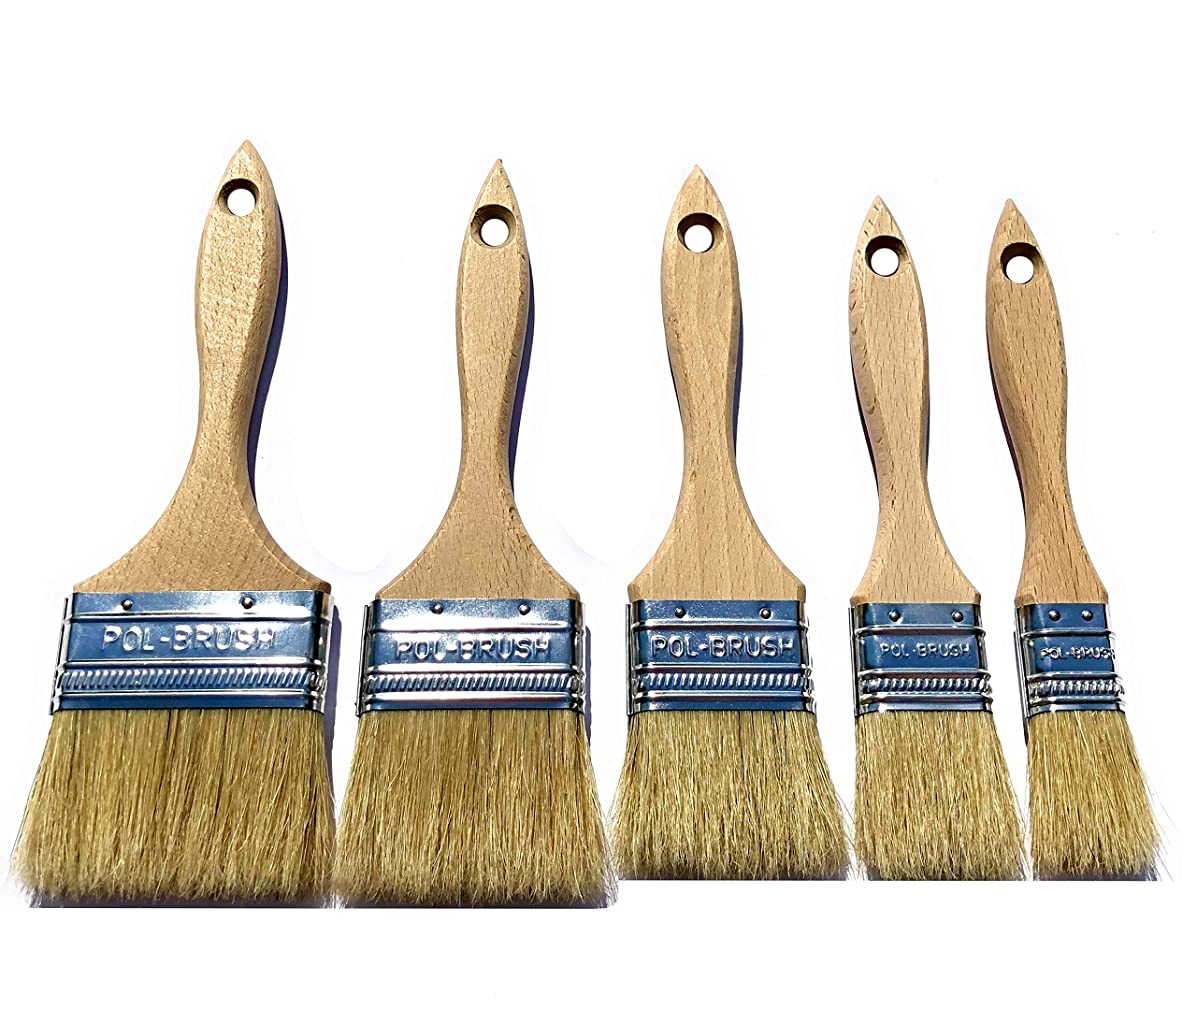 5 Pack - European Paint Brushes - Natural Bristle/Wood Handle - for Professional & Amateur Paint Job; for All Latex & Oil Base Paints, Stains, Varnish, Shellac, Polyurethane & Wax. (5Pack 5 Sizes)